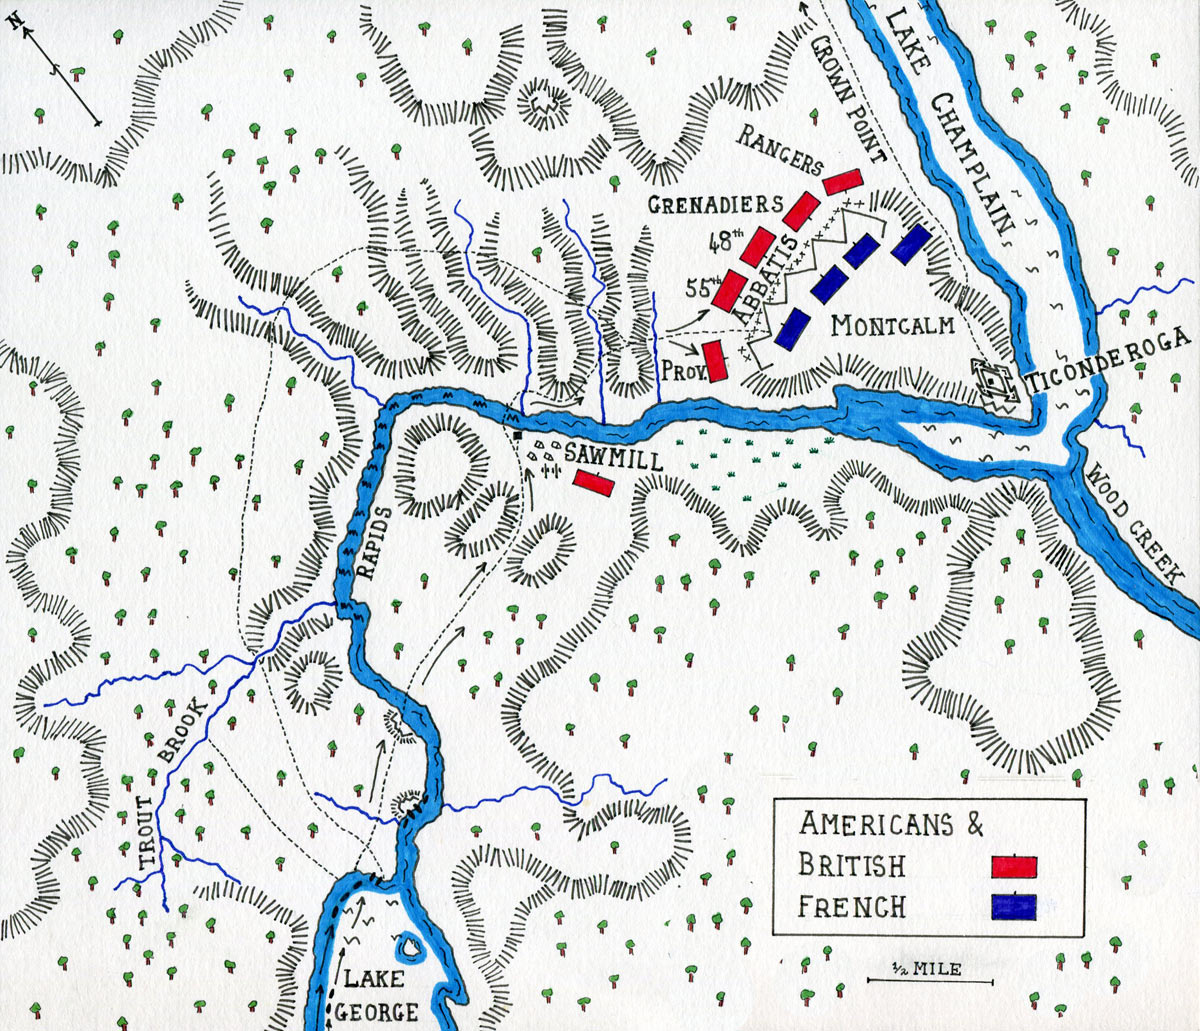 Map of the Battle of Ticonderoga on 8th July 1758 in the French and Indian War: map by John Fawkes